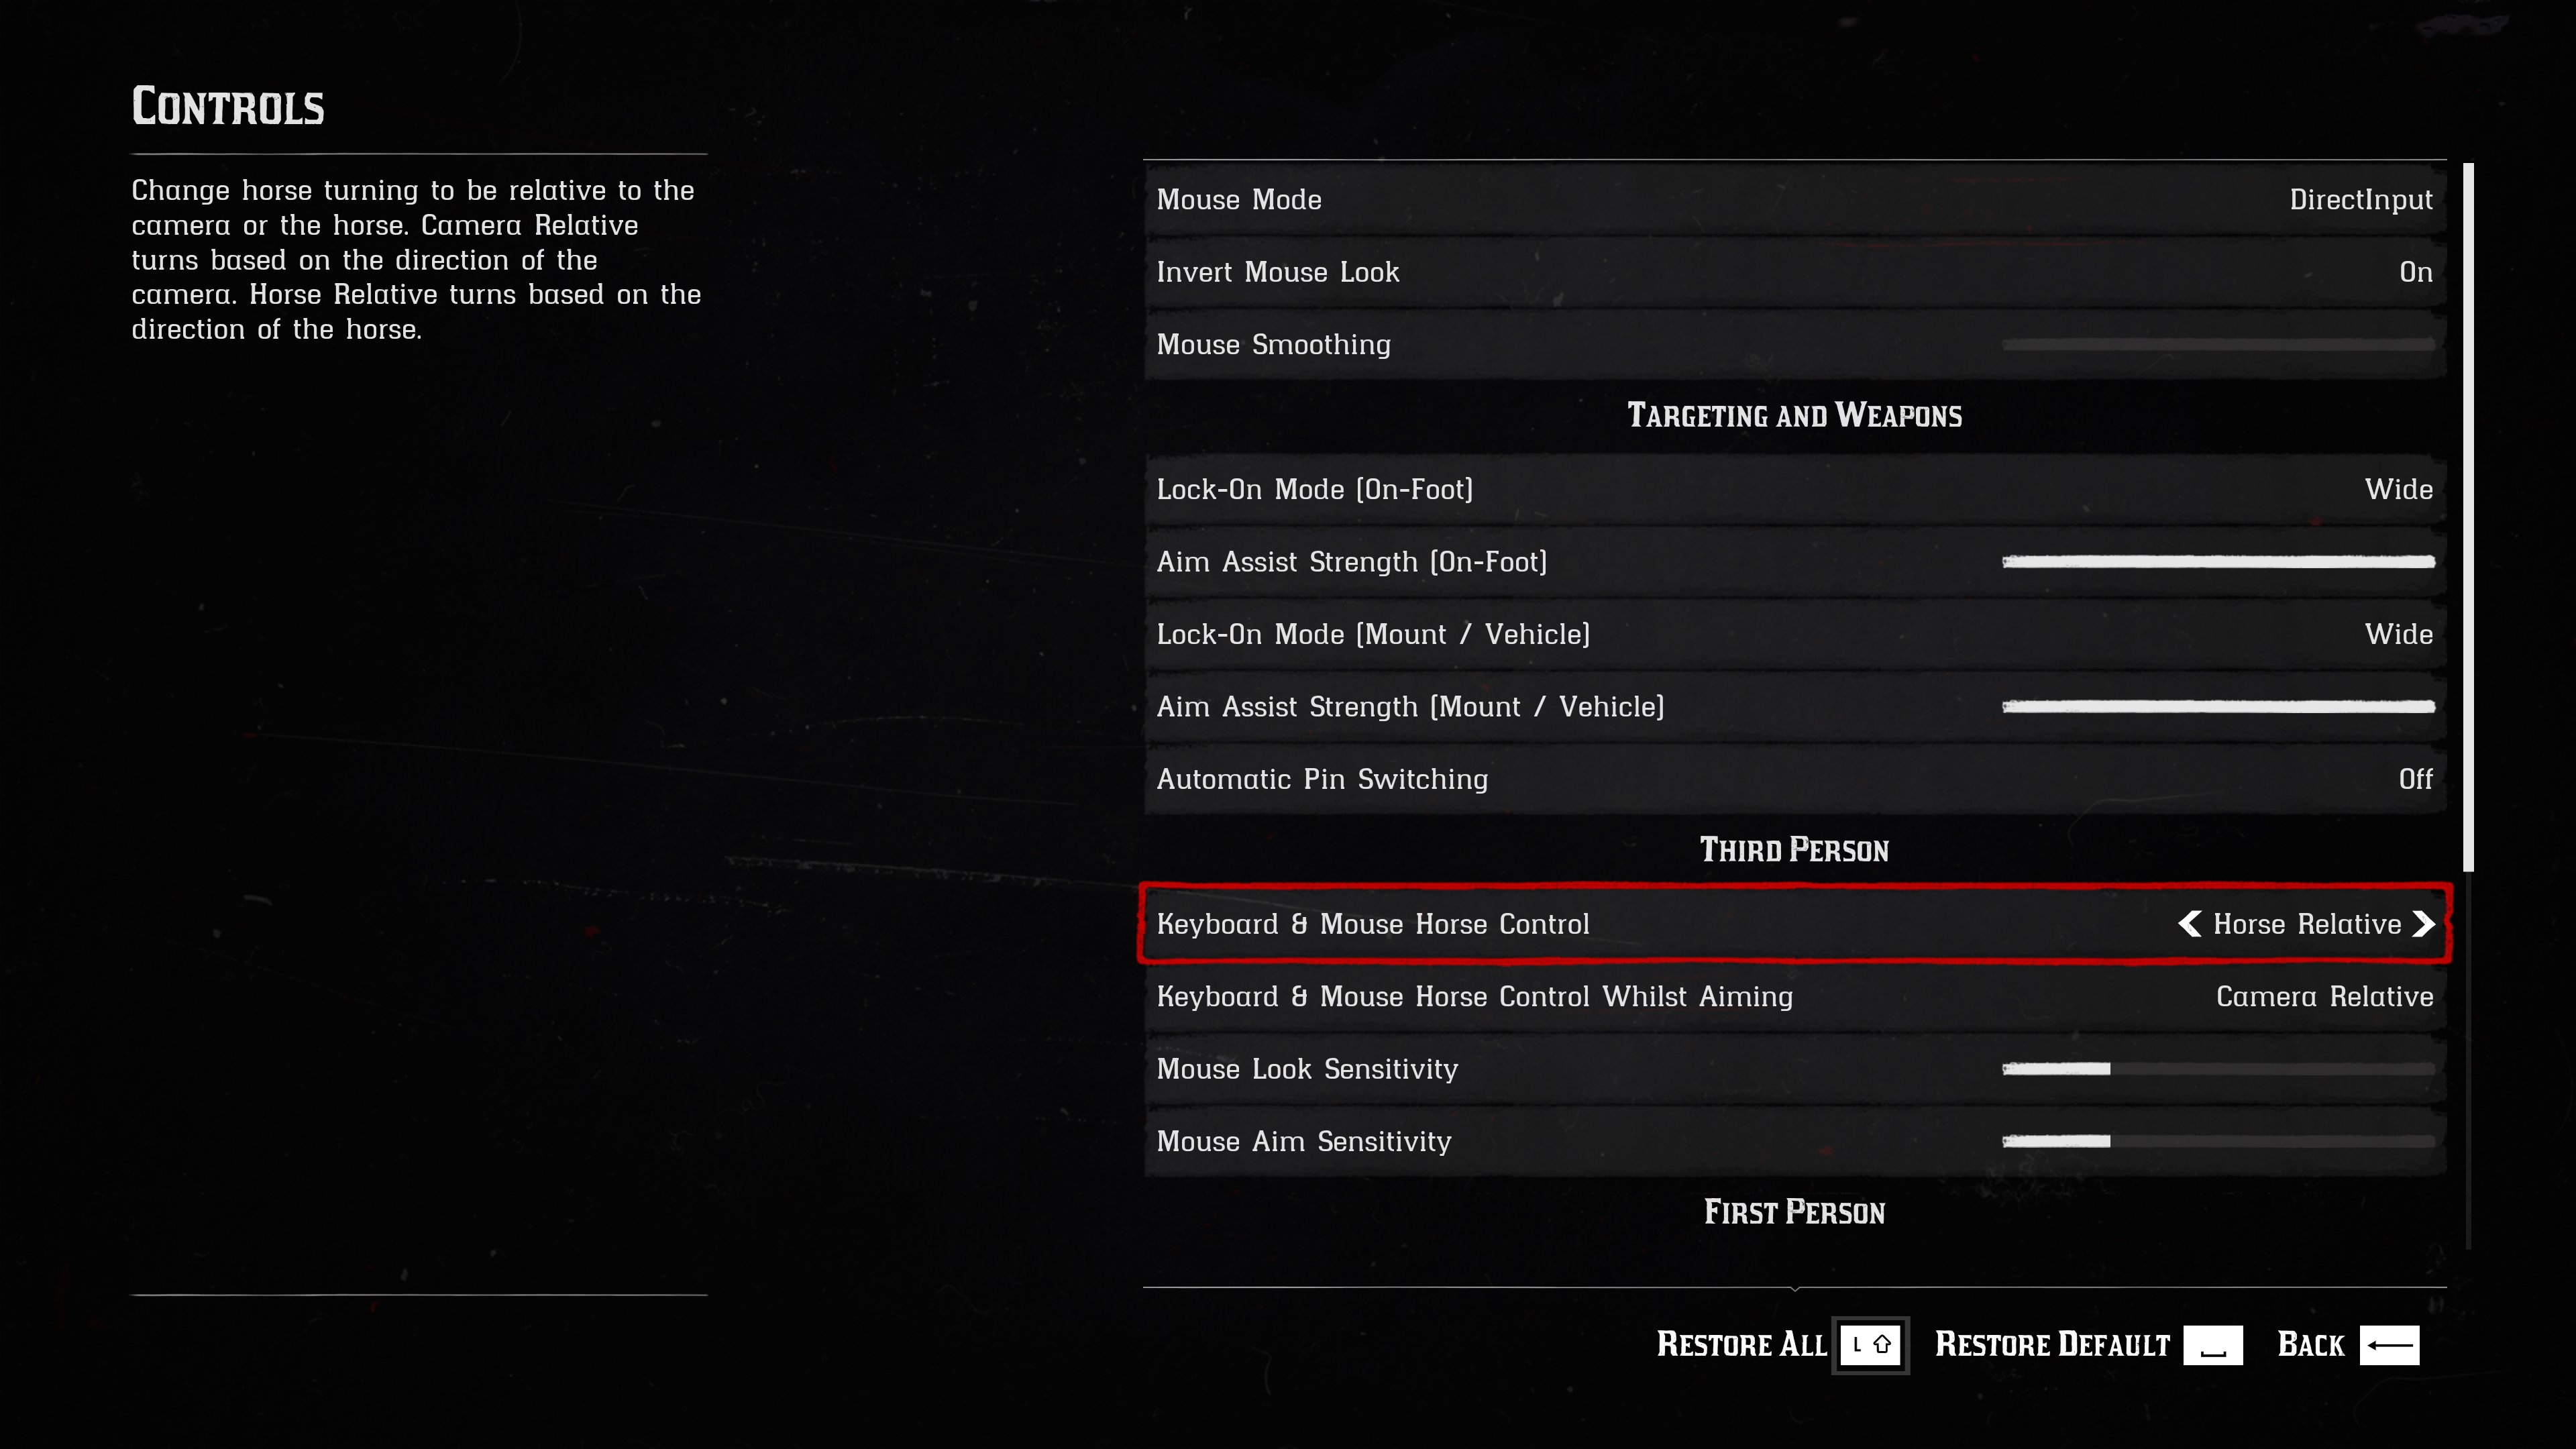 keyboard and mouse settings page will allow you to fix horse controls